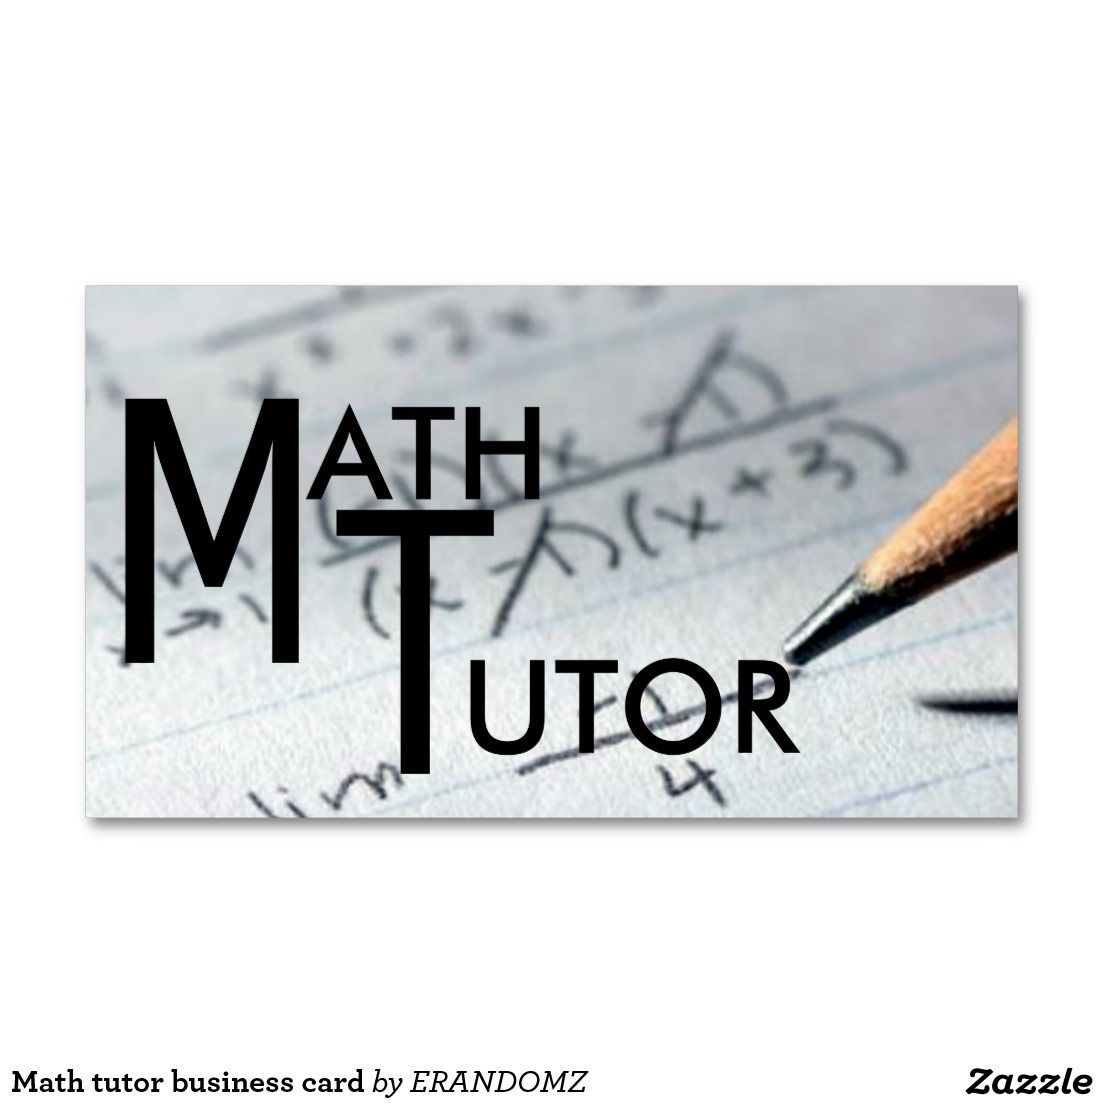 Math tutor business card | Math tutor, Business cards and Math